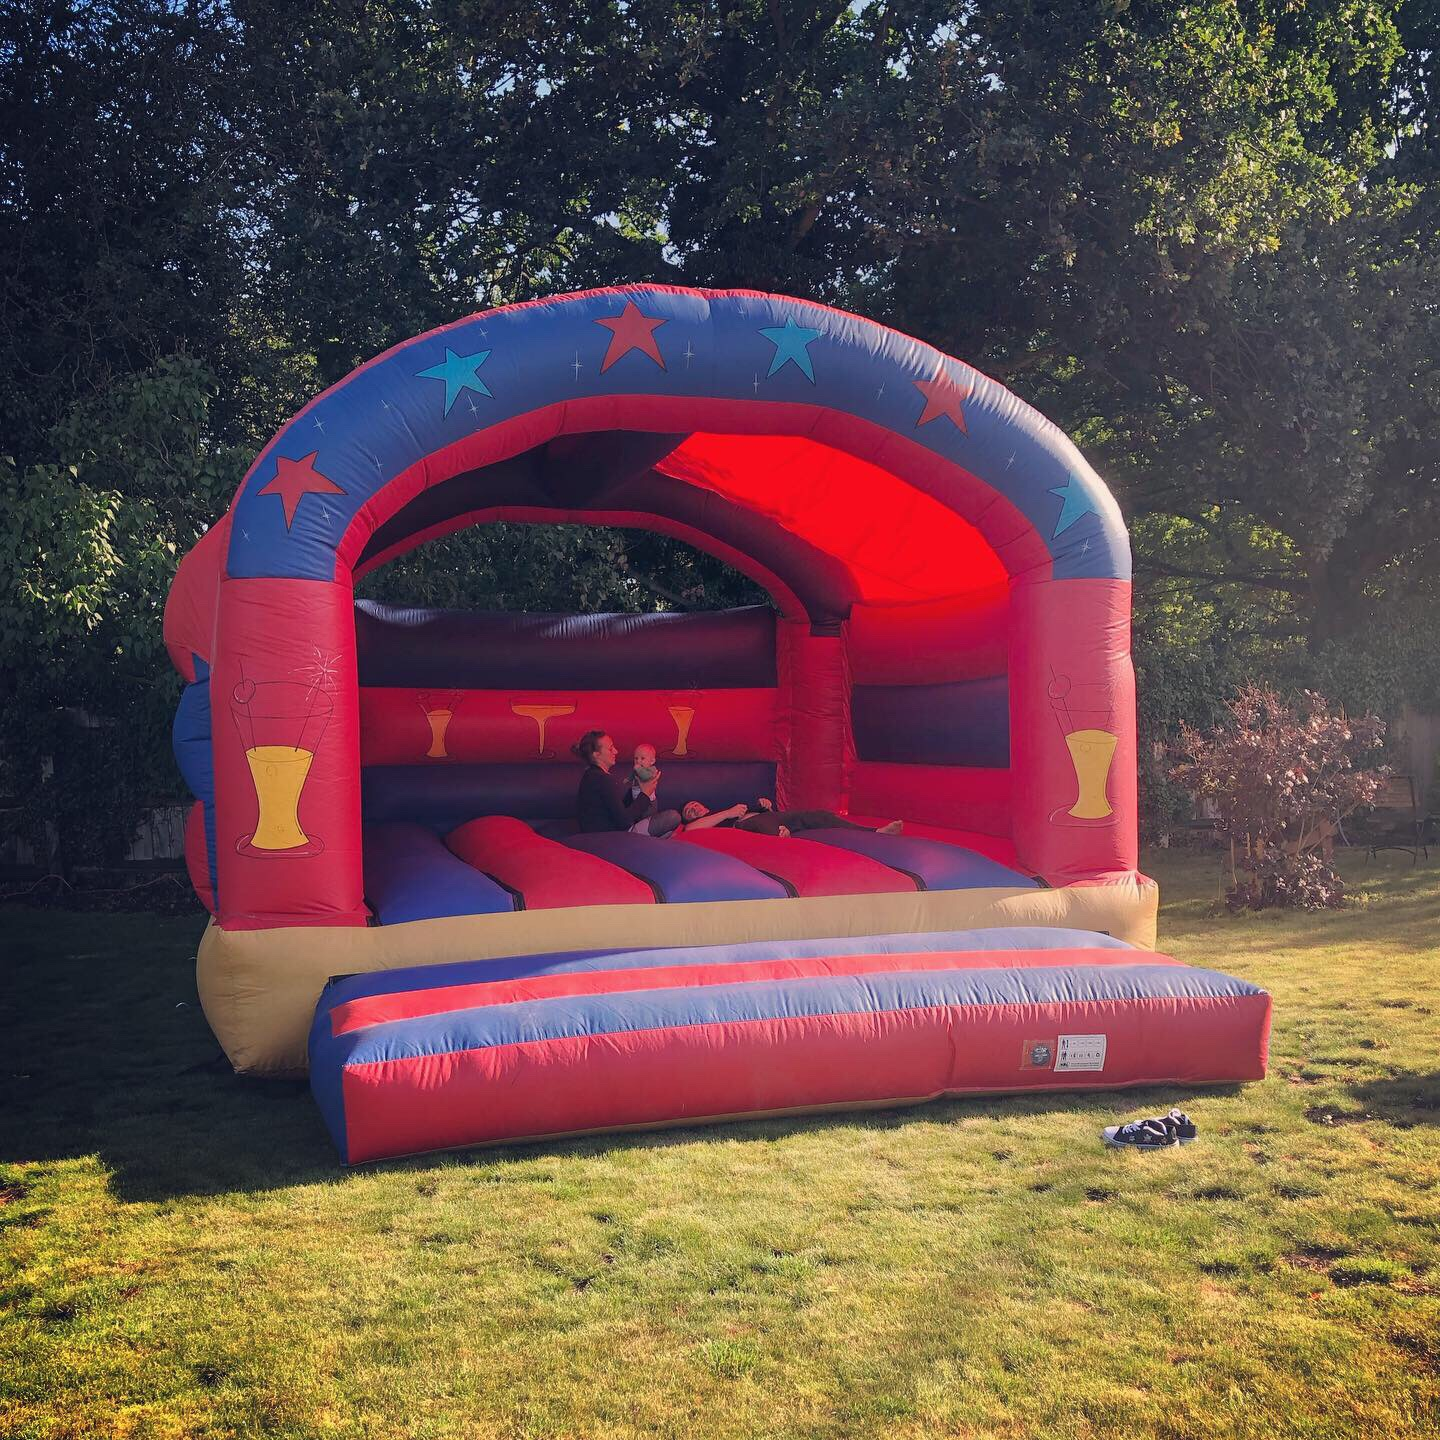 Saturday was Ben's 21st birthday party, and like all 21 year olds he wanted a bouncy castle hahahahaha